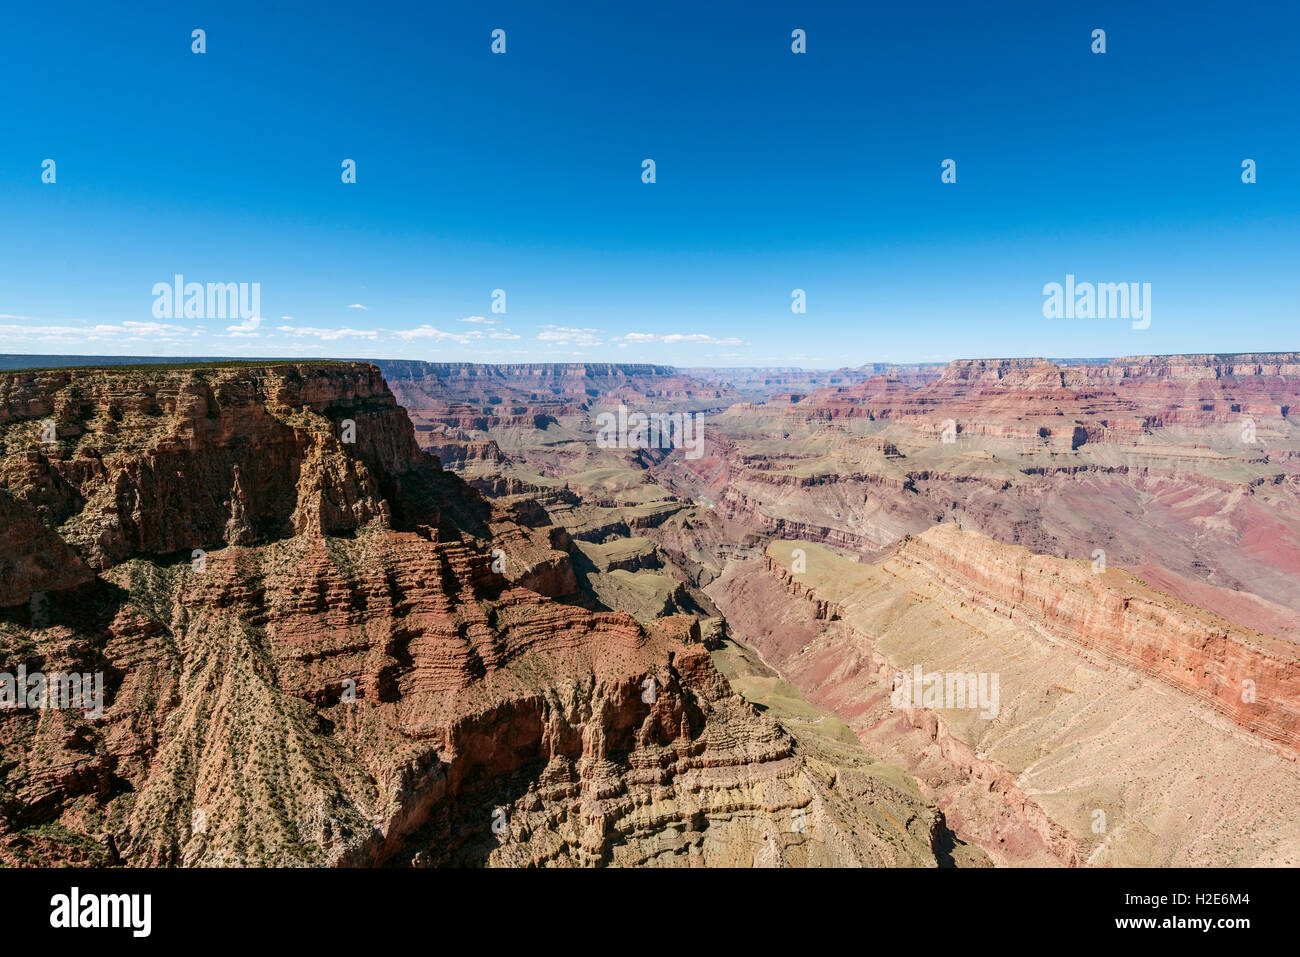 View of canyon landscape, South Rim, Grand Canyon National Park, Arizona, USA - Stock Image